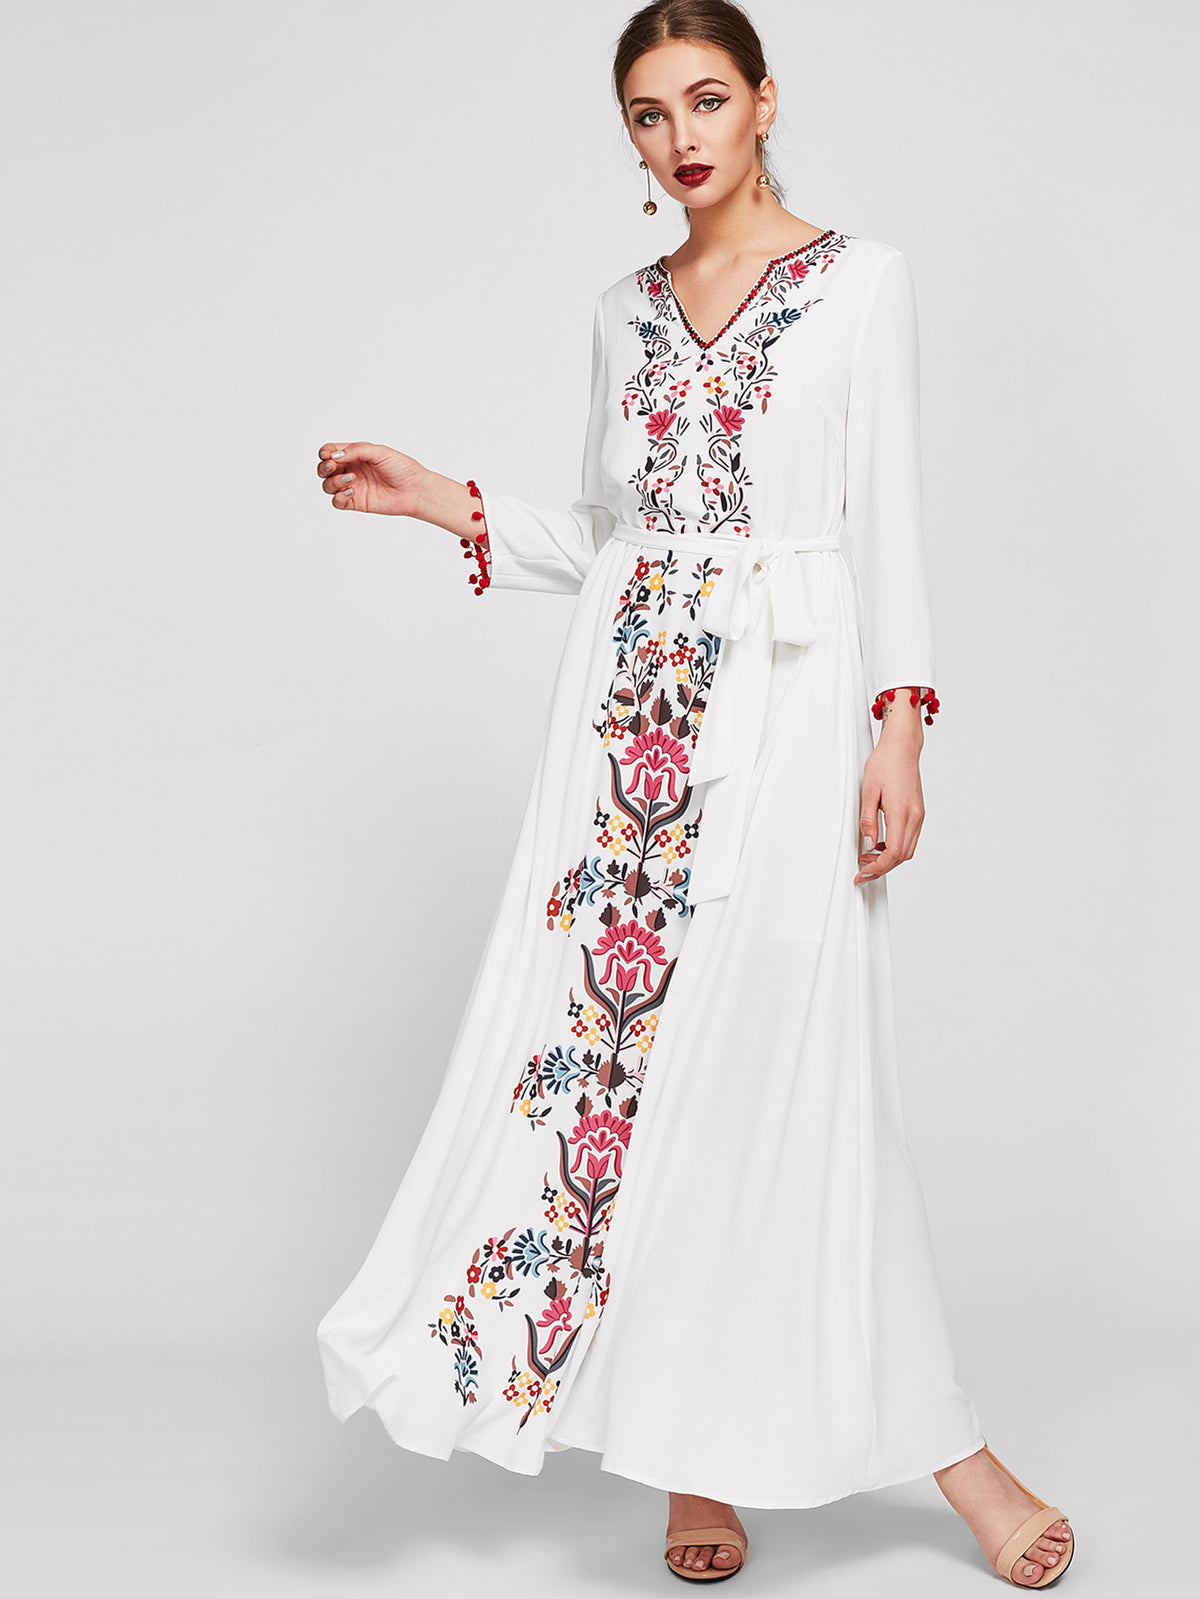 Embroidered Tape Trim Symmetric Flower Print Dress